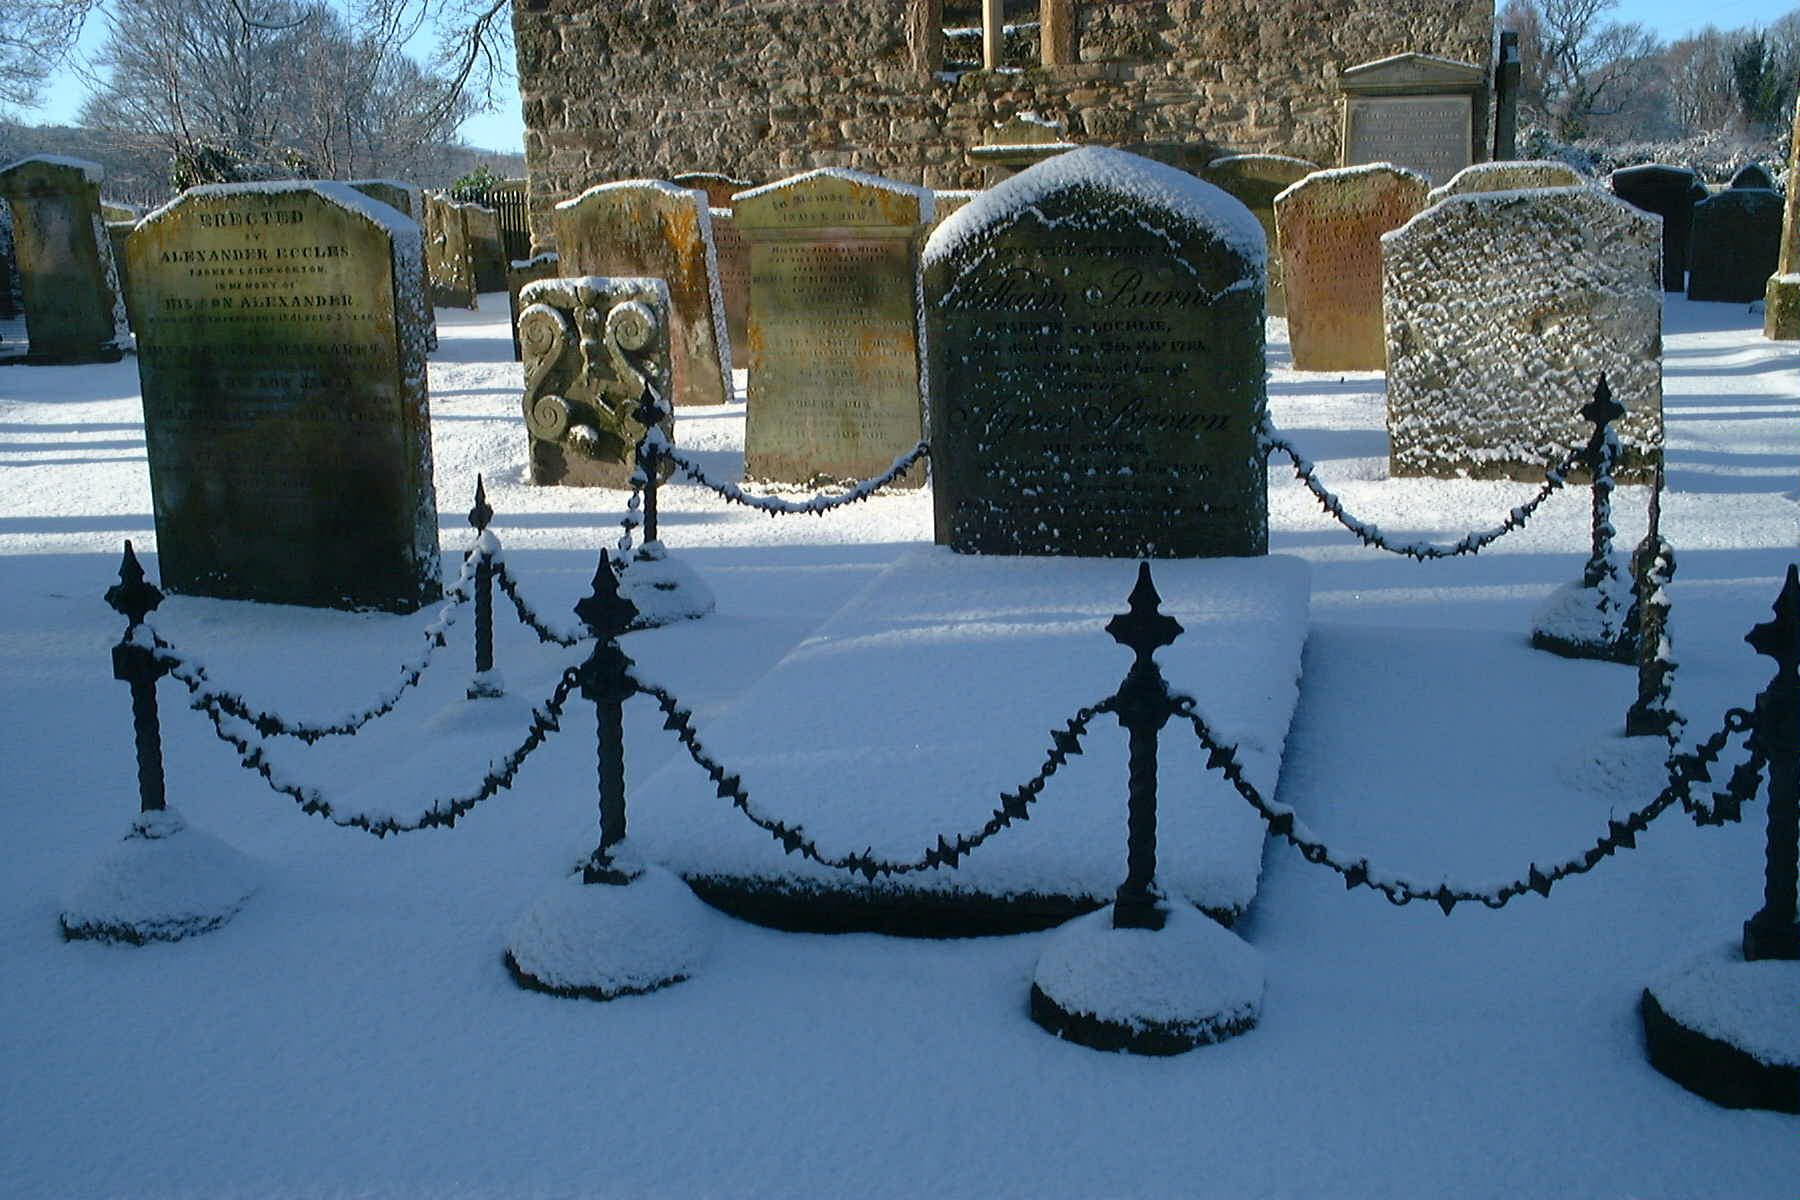 Auld Kirk Alloway, Ayr, William Burnes grave (Burns father) Jan 5th 2010 bt Rg Tait